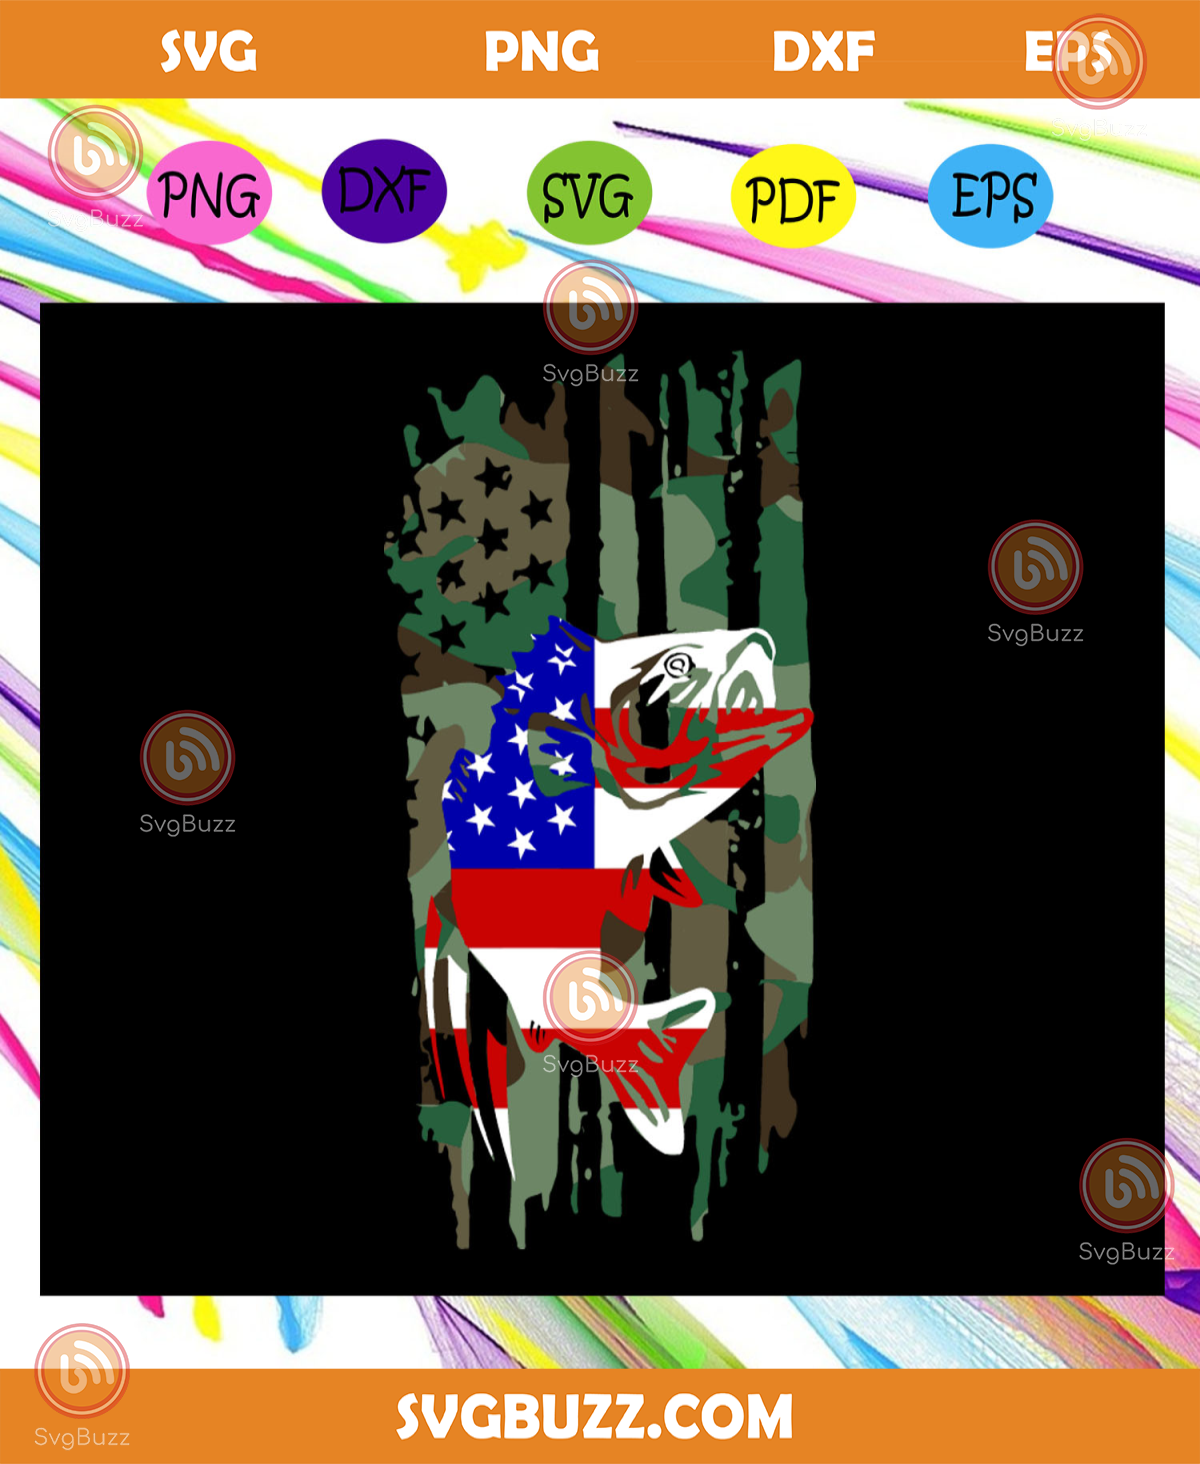 Download Fishing American Flag 4th Of July Svg American Flag Svg Fourth Of July Svg America Svg Patriotic American Svg Independence Day Svg Memorial Day Files For Silhouette Files For Cricut Svg Dxf Eps